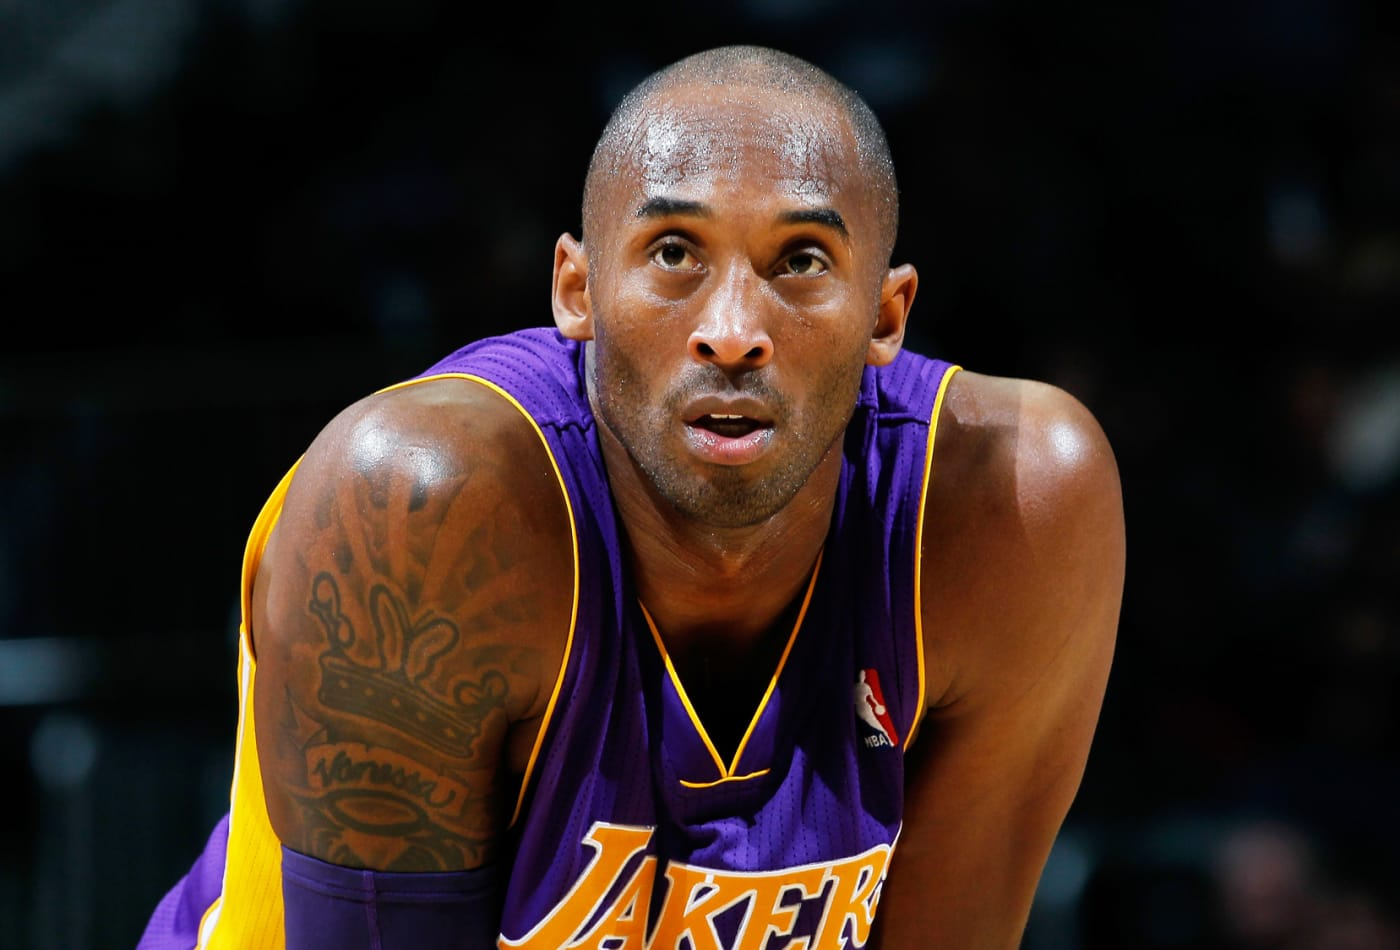 What Really Happened in the Helicopter with Kobe Bryant?